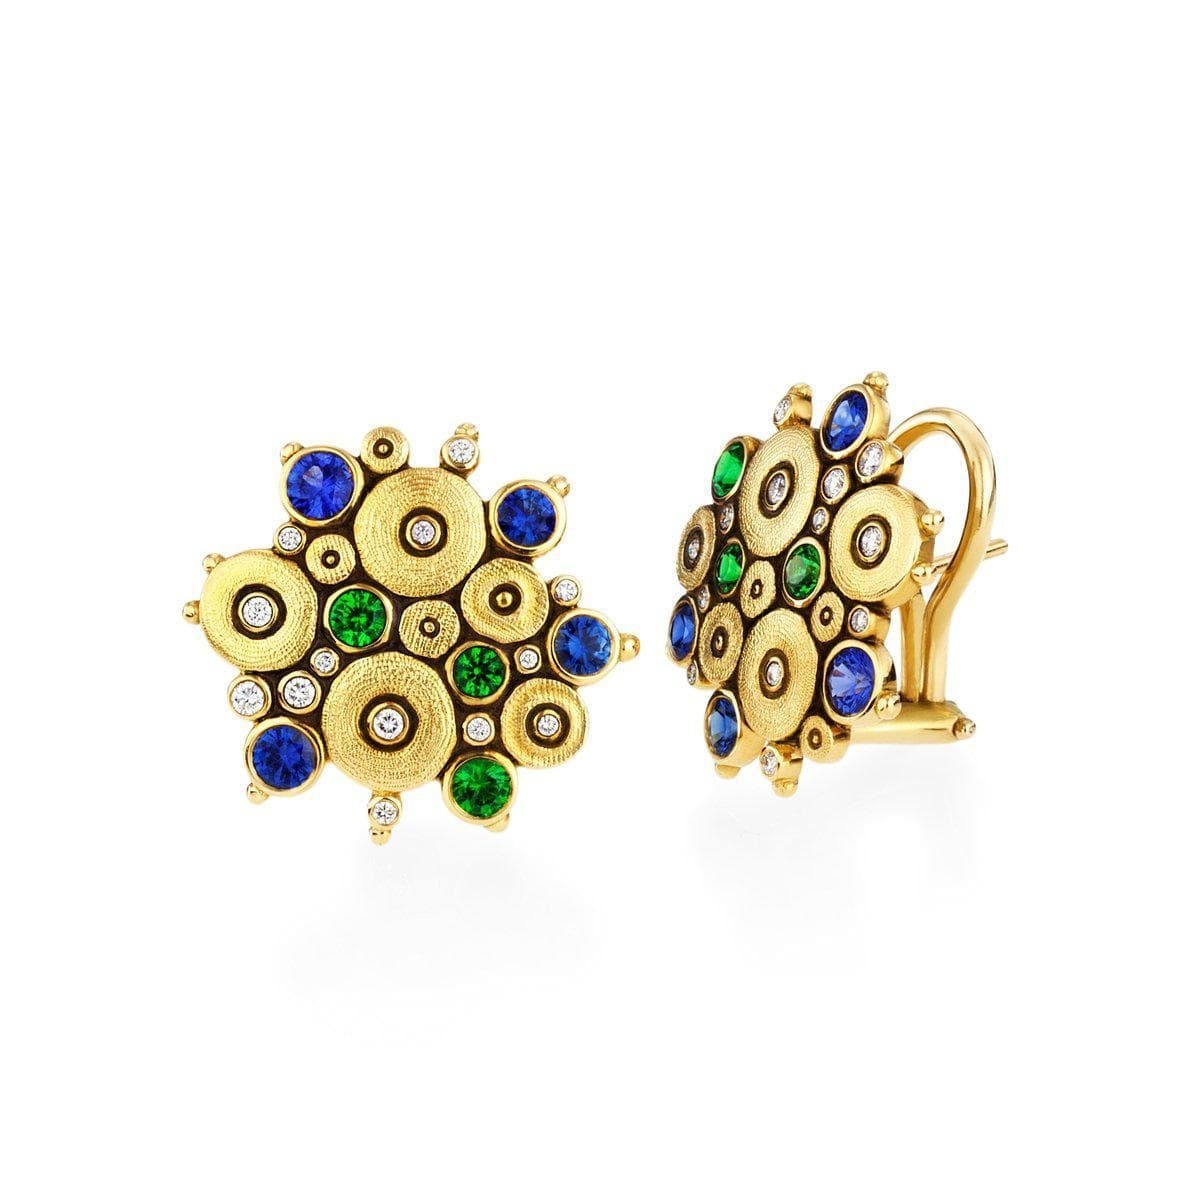 18K Ocean Blue Green Mix Sapphire Tsavorite & Diamond Earrings - E-90-Alex Sepkus-Renee Taylor Gallery